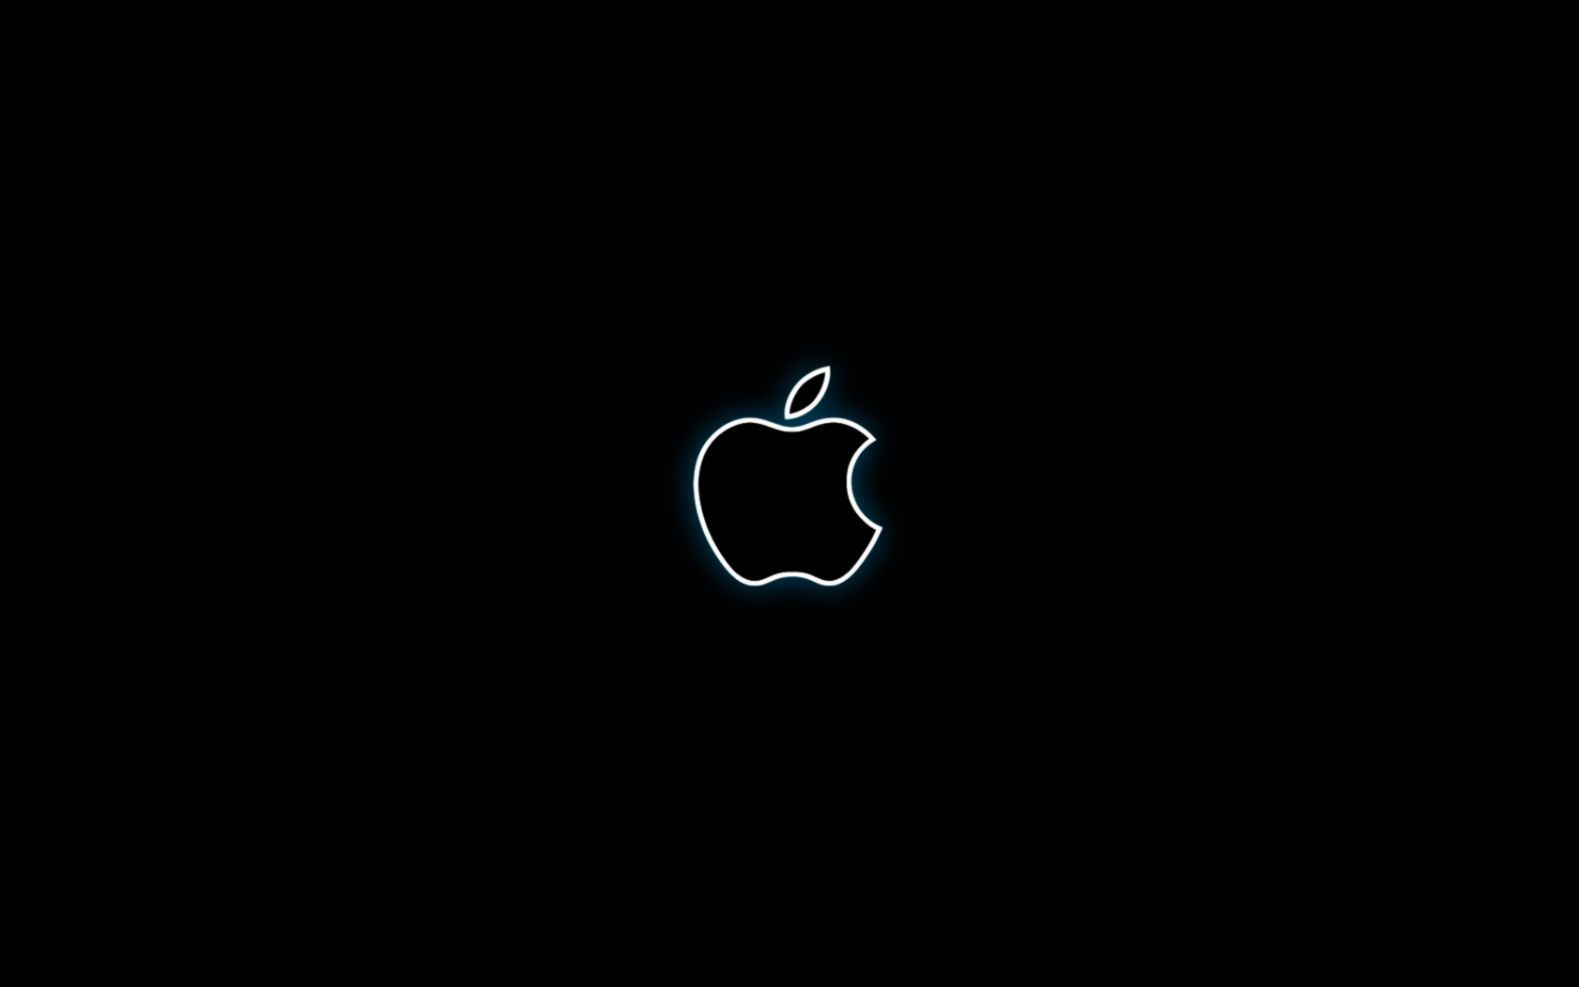 Apple Logo Hd Wallpapers Free Download Dom Wallpapers